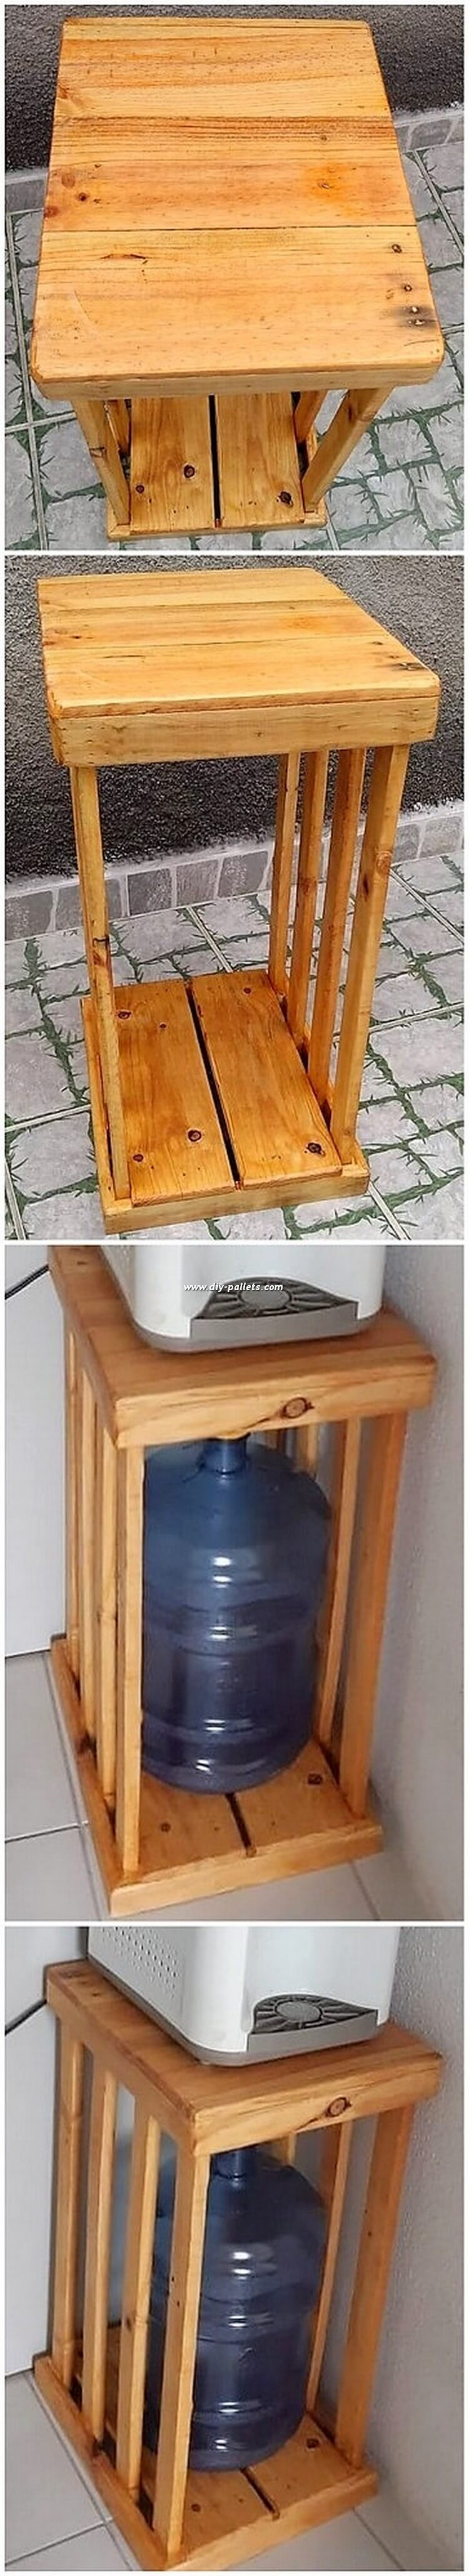 Wooden Pallet Cooler Stand